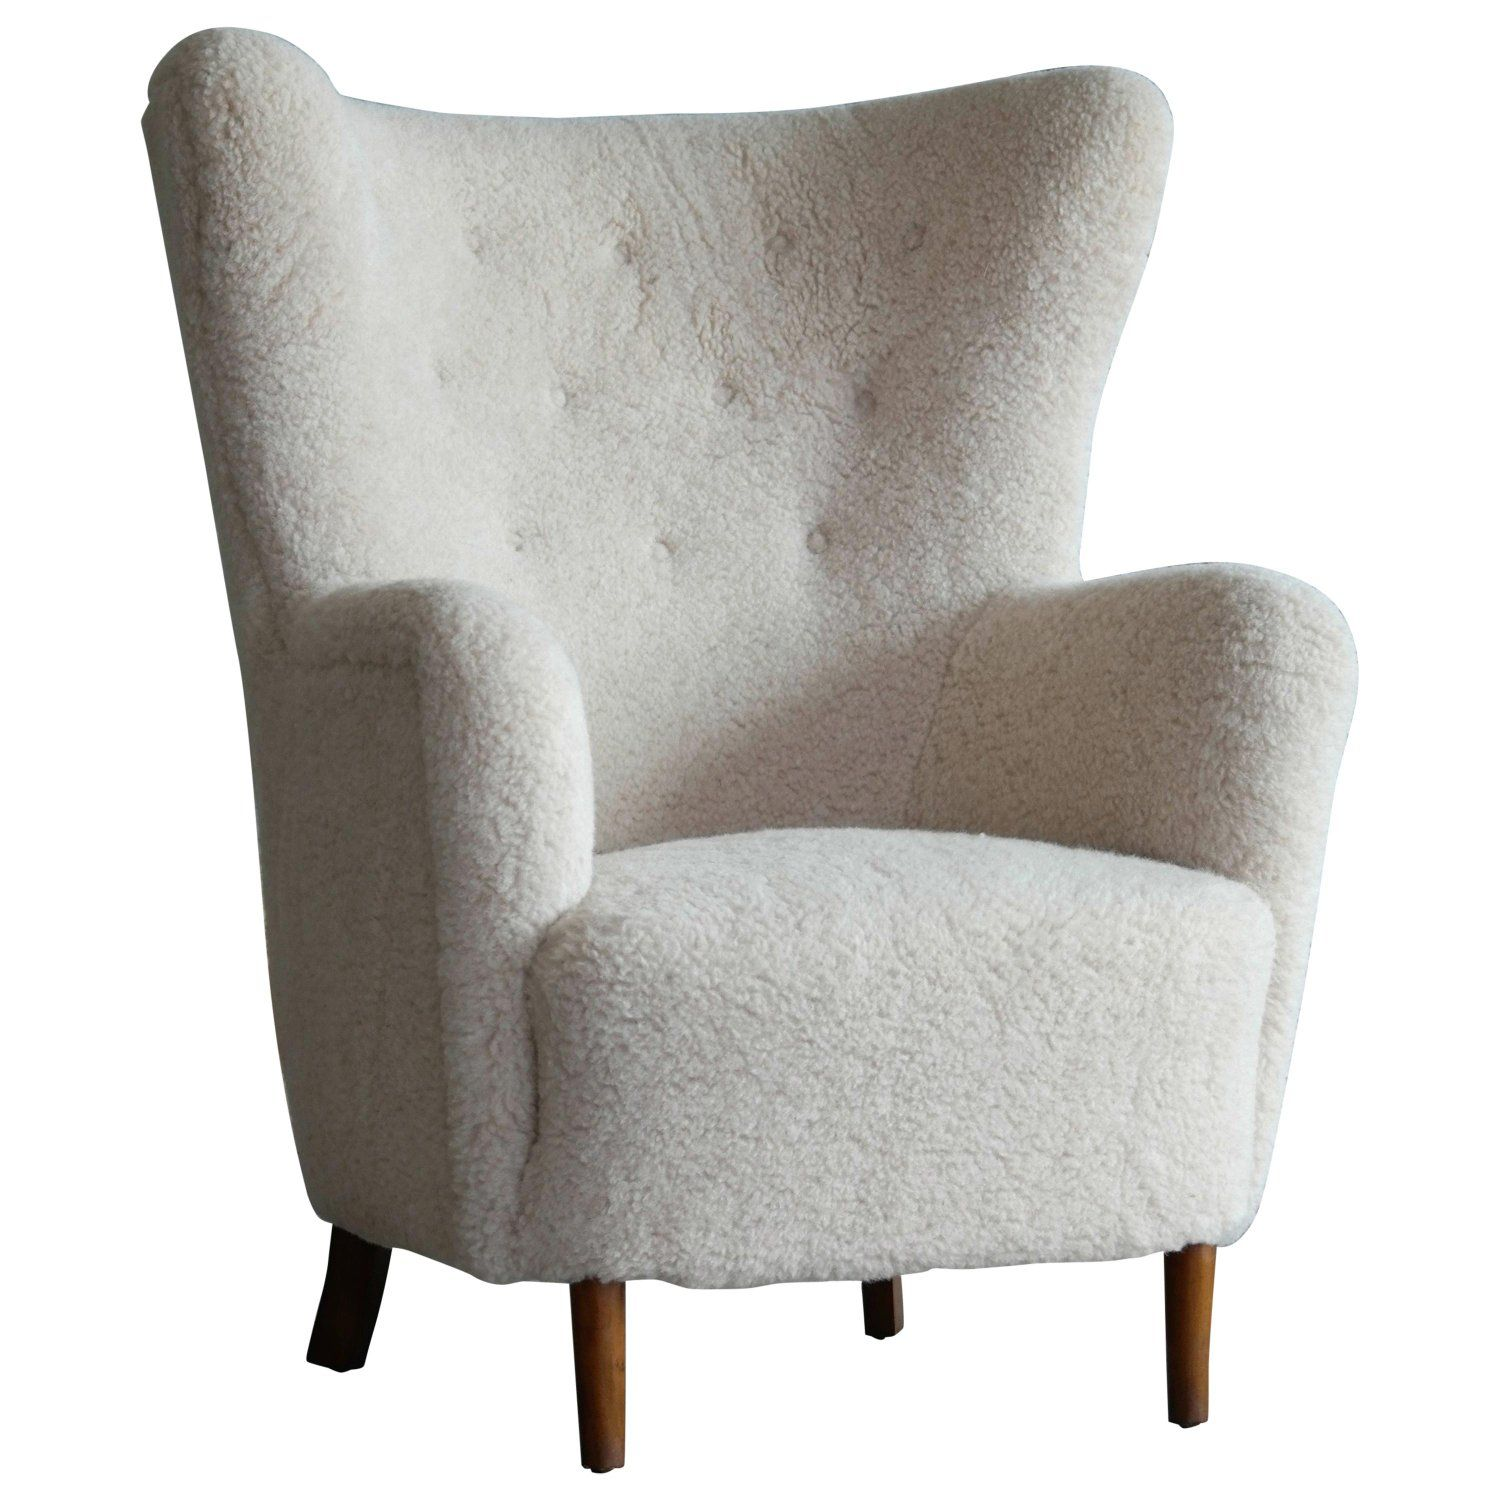 Danish 1940s high back lounge chair in beige lambswool in